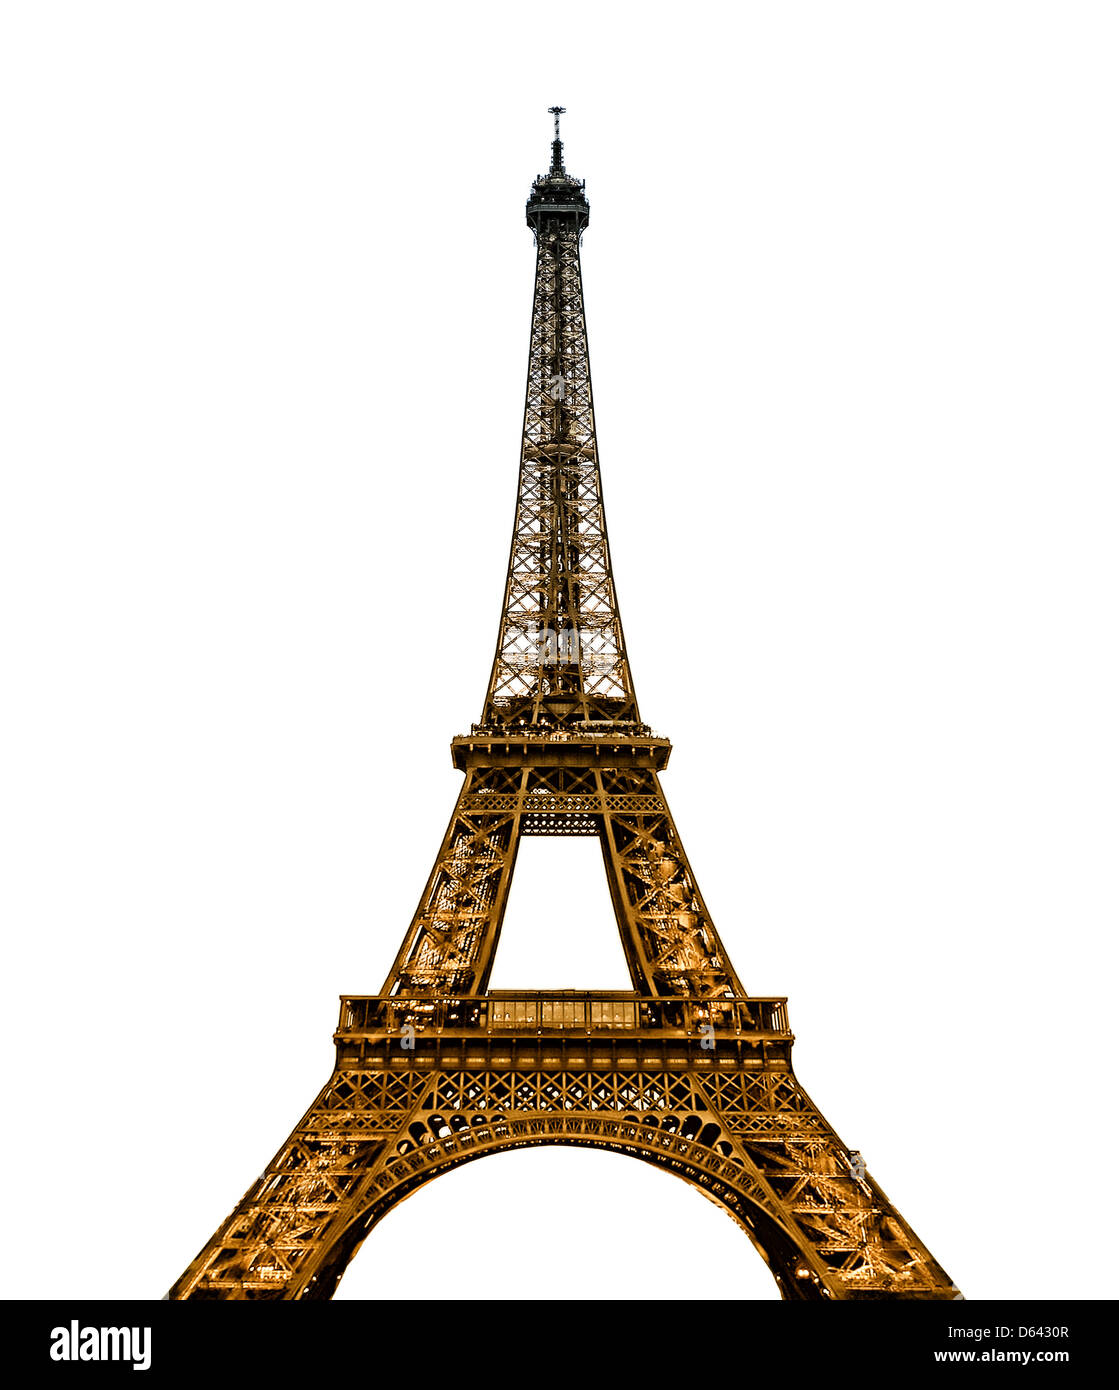 Eiffel Tower in Paris France - Stock Image